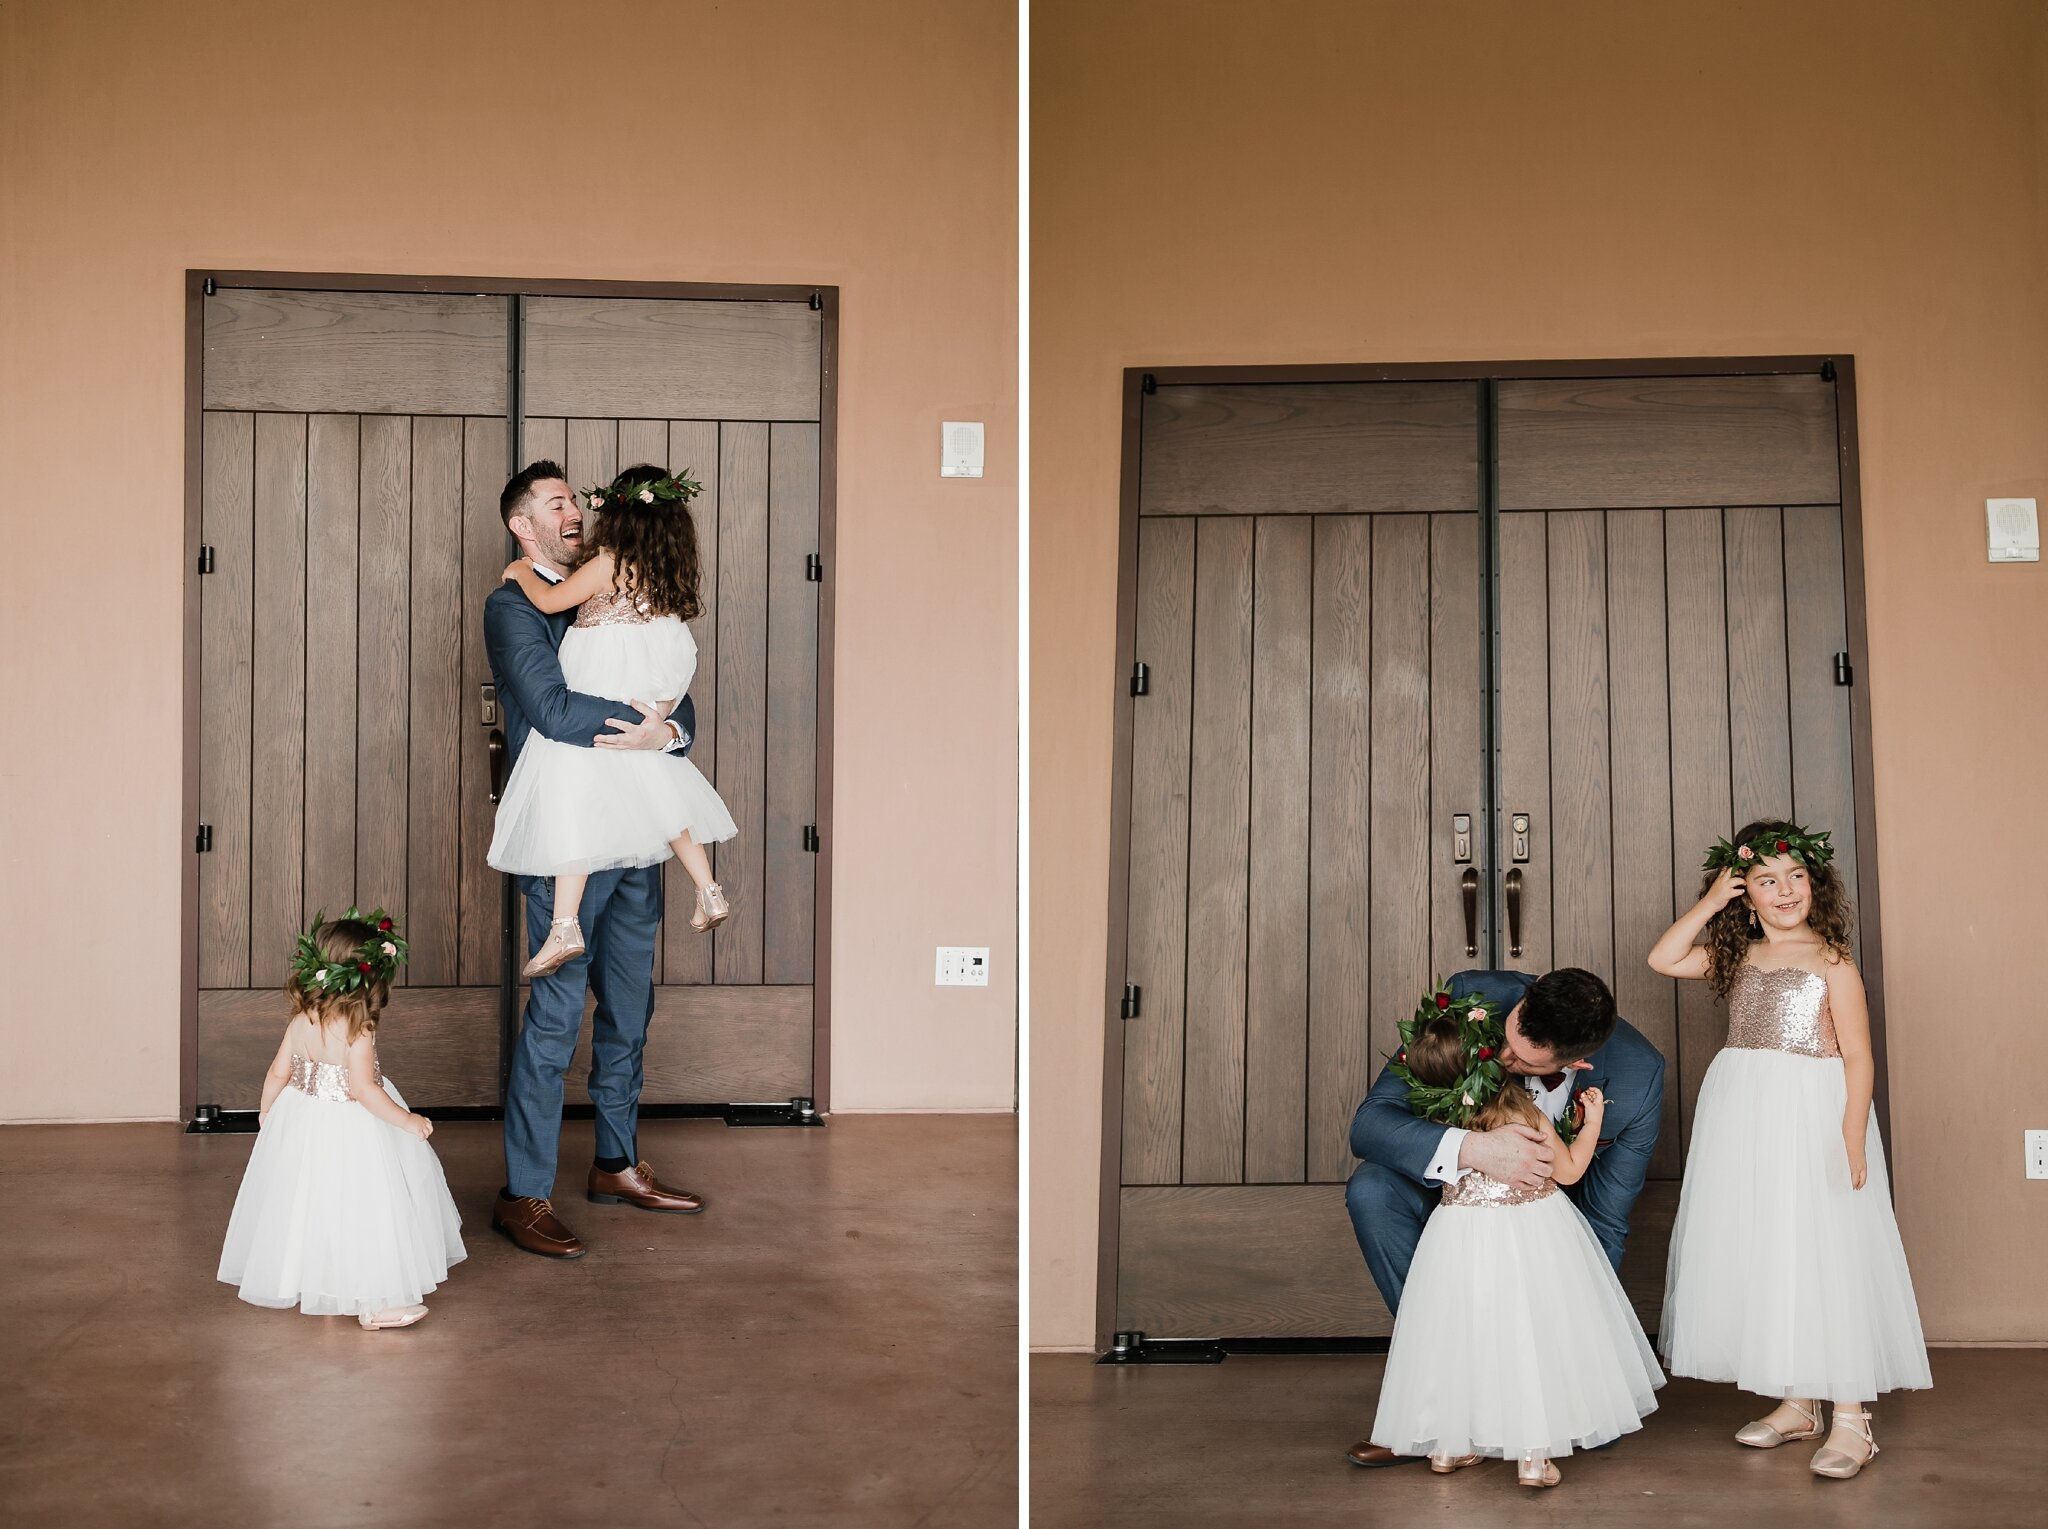 Alicia+lucia+photography+-+albuquerque+wedding+photographer+-+santa+fe+wedding+photography+-+new+mexico+wedding+photographer+-+new+mexico+wedding+-+albuquerque+wedding+-+sandia+wedding+-+sandia+event+center+wedding_0025.jpg